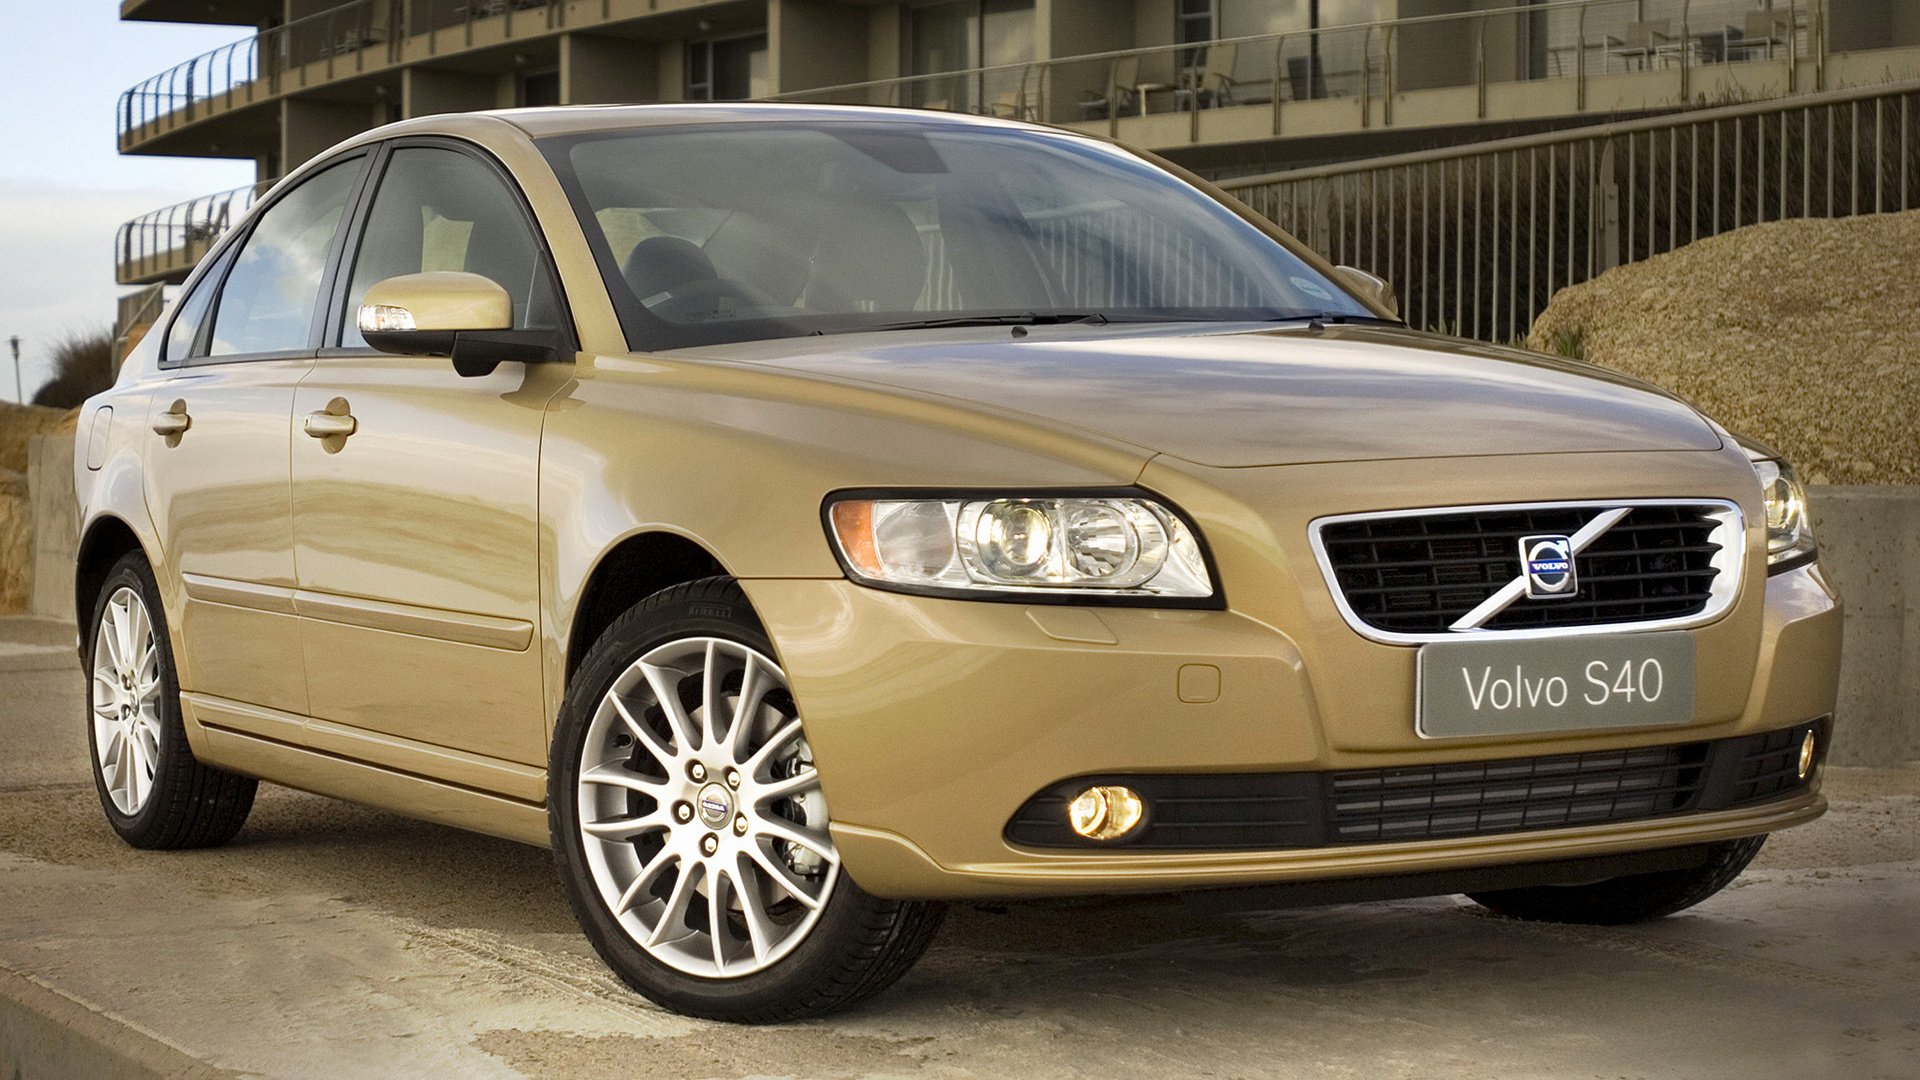 car wallpapers volvo s40 - photo #17